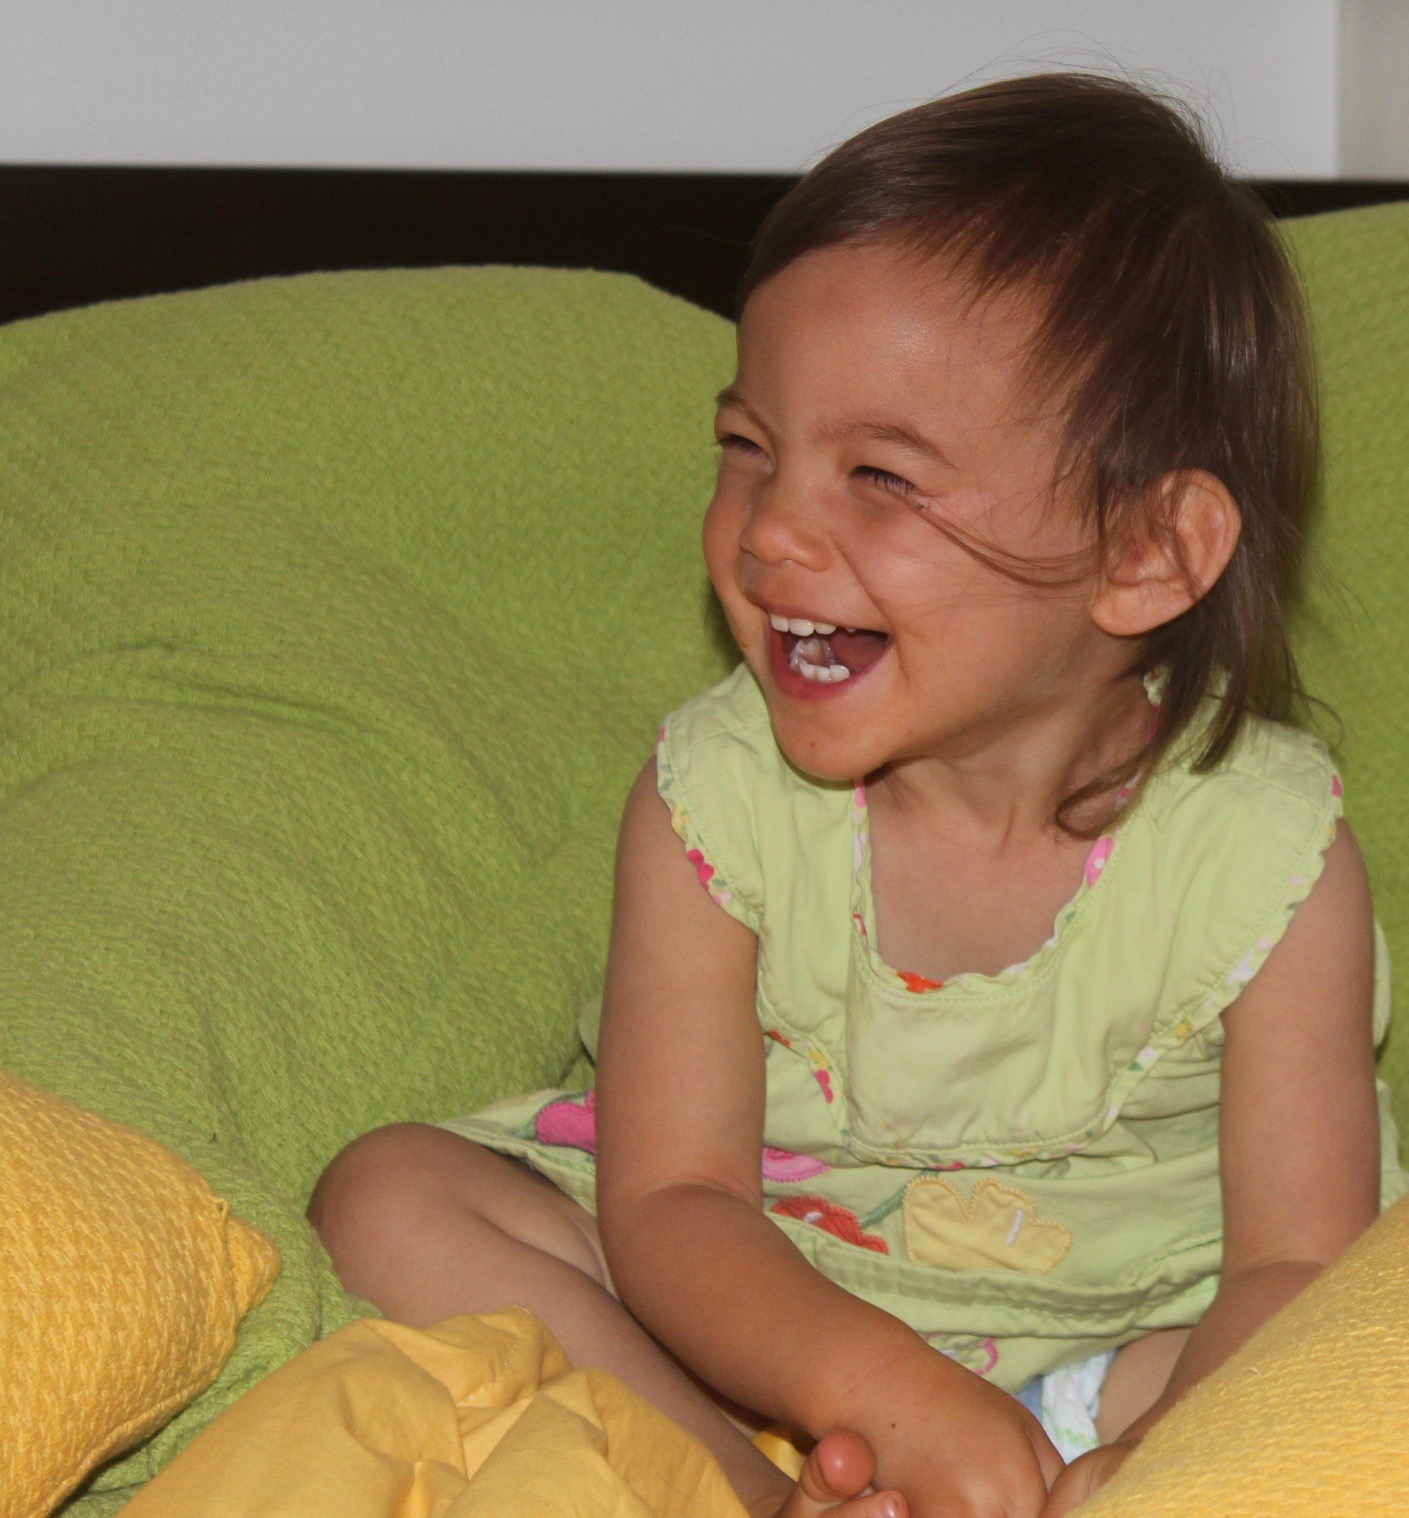 Image of little girl laughing to depict a gift of a laughter box from CALMERme.com